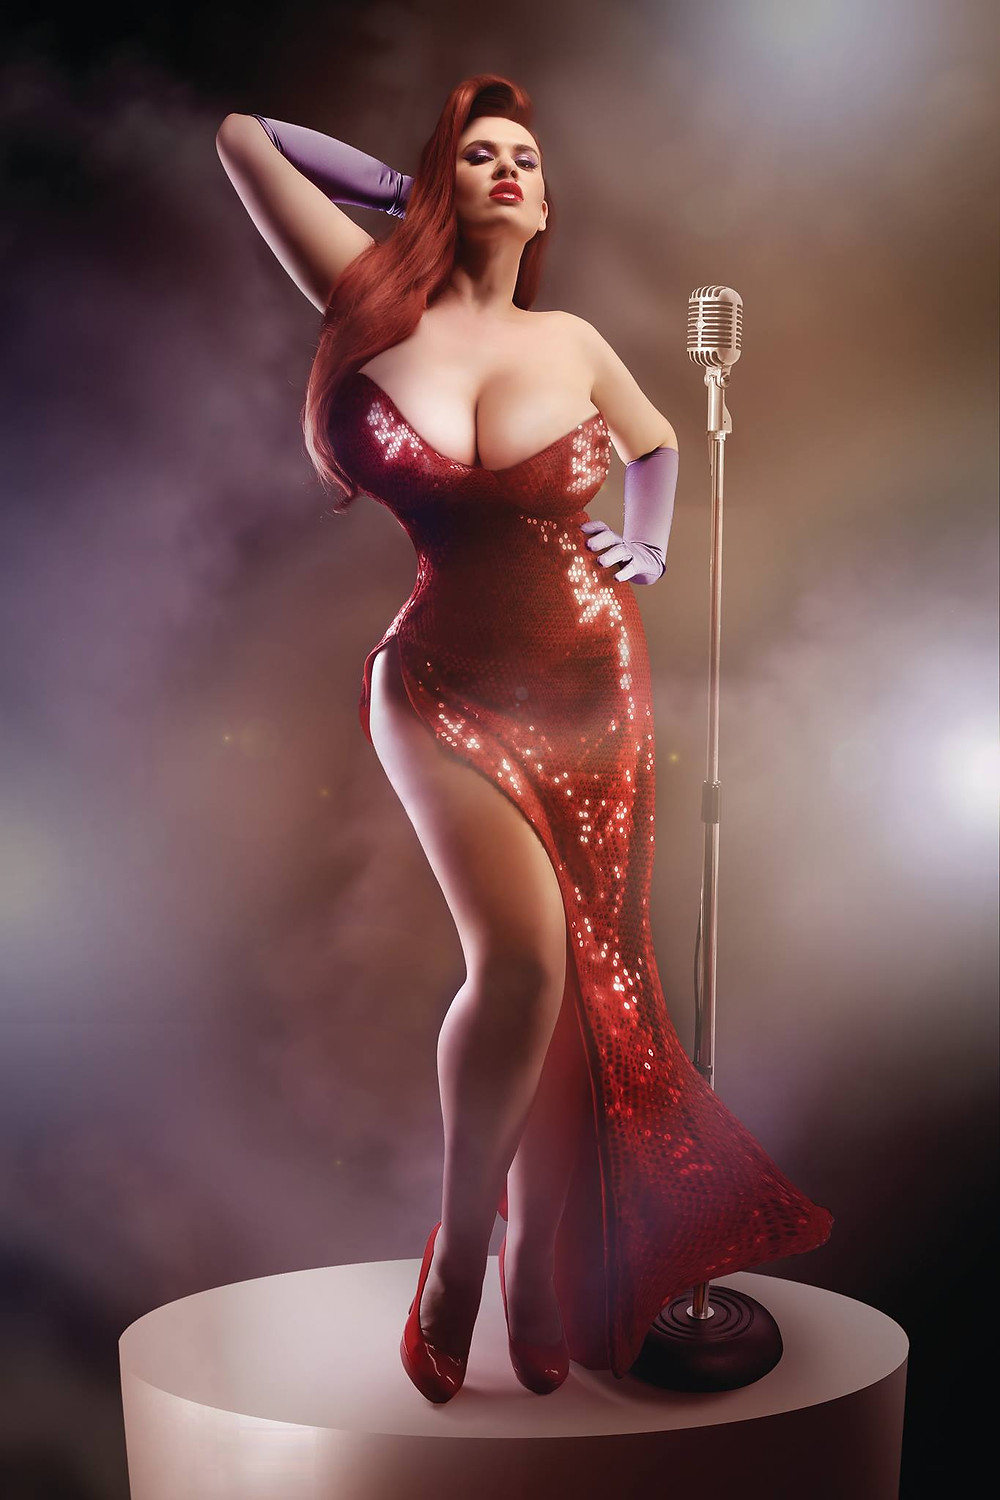 Jessica Rabbit Pinup Cosplay | Model: Lexy Lu | By Chrissy Sparks at DOLLHOUSE